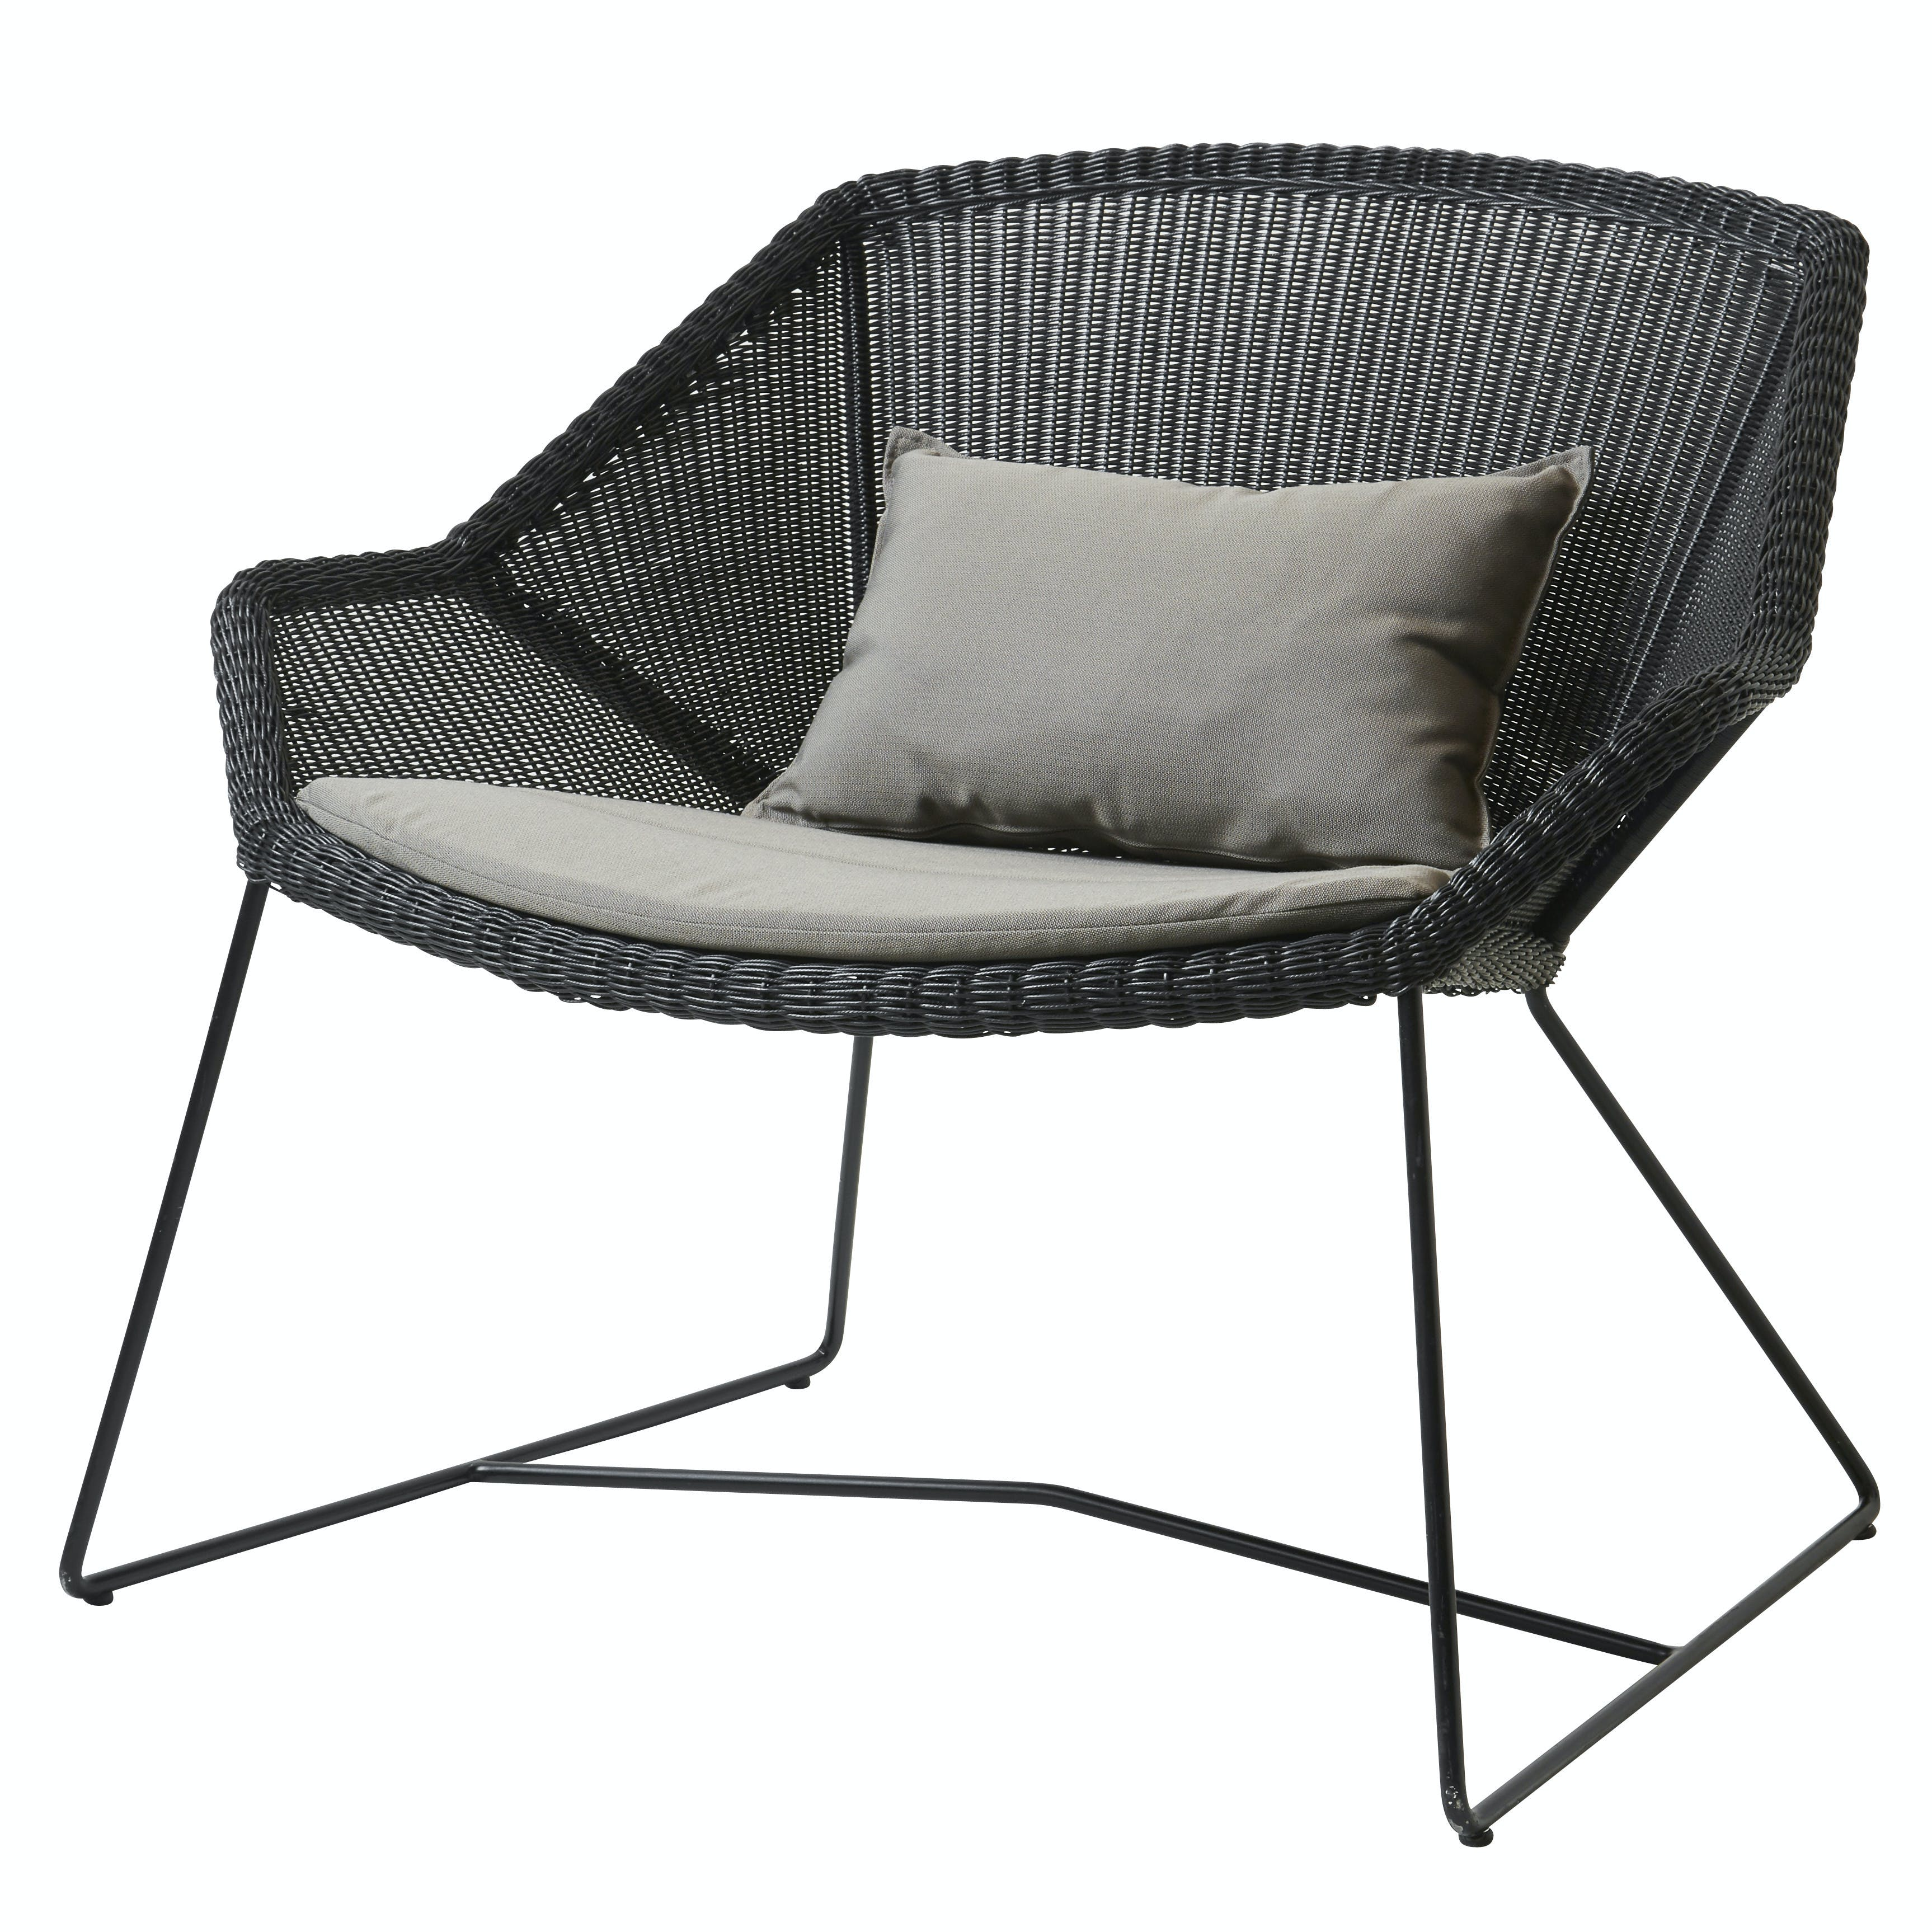 Breeze_lounge_chair_black_taupe_Y36